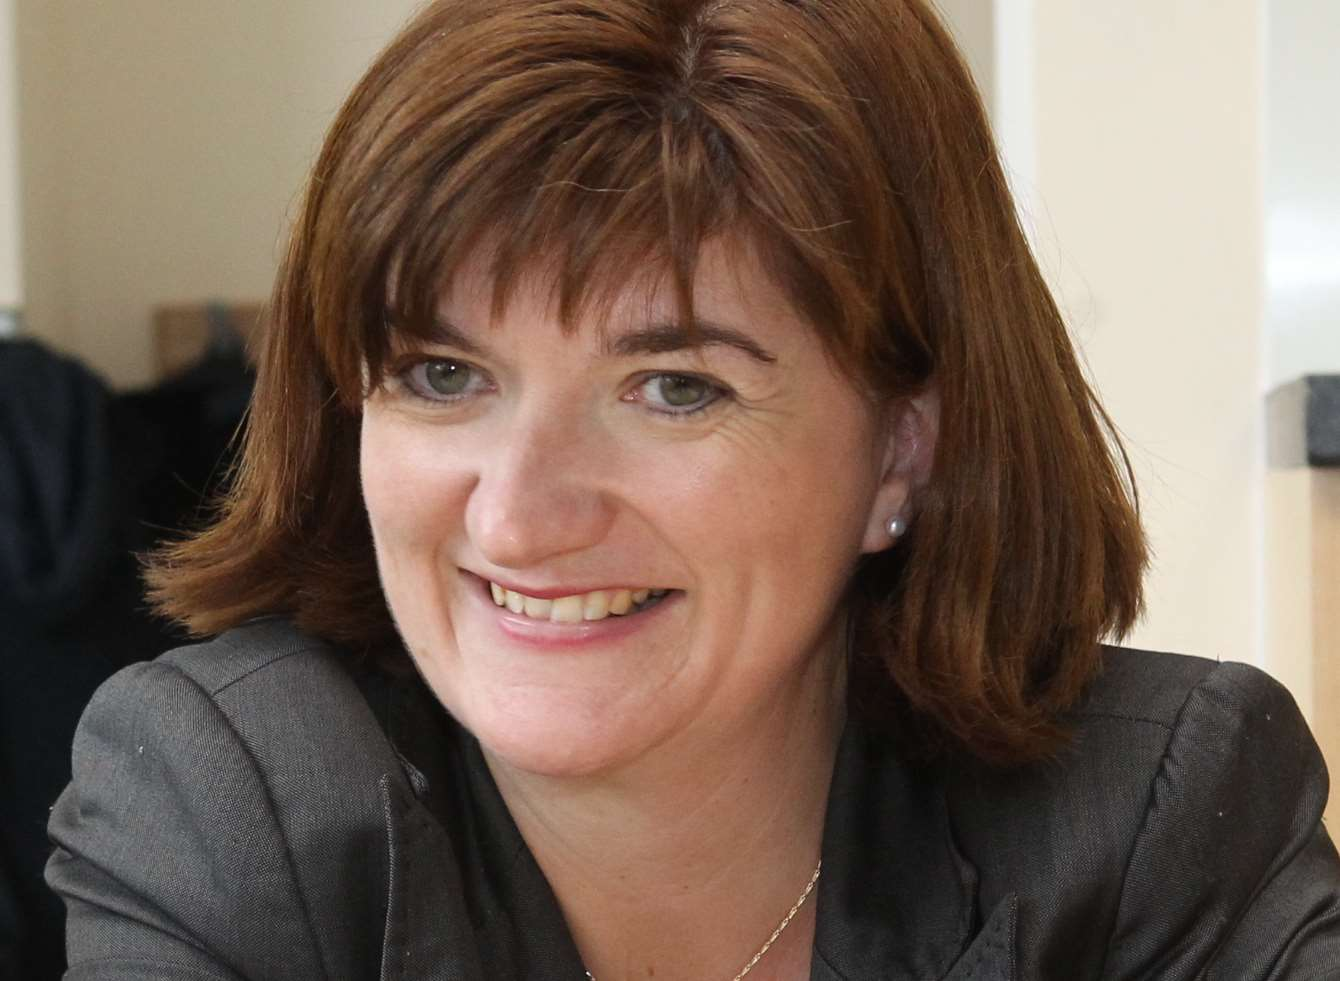 Minister for Women and Equalities Nicky Morgan